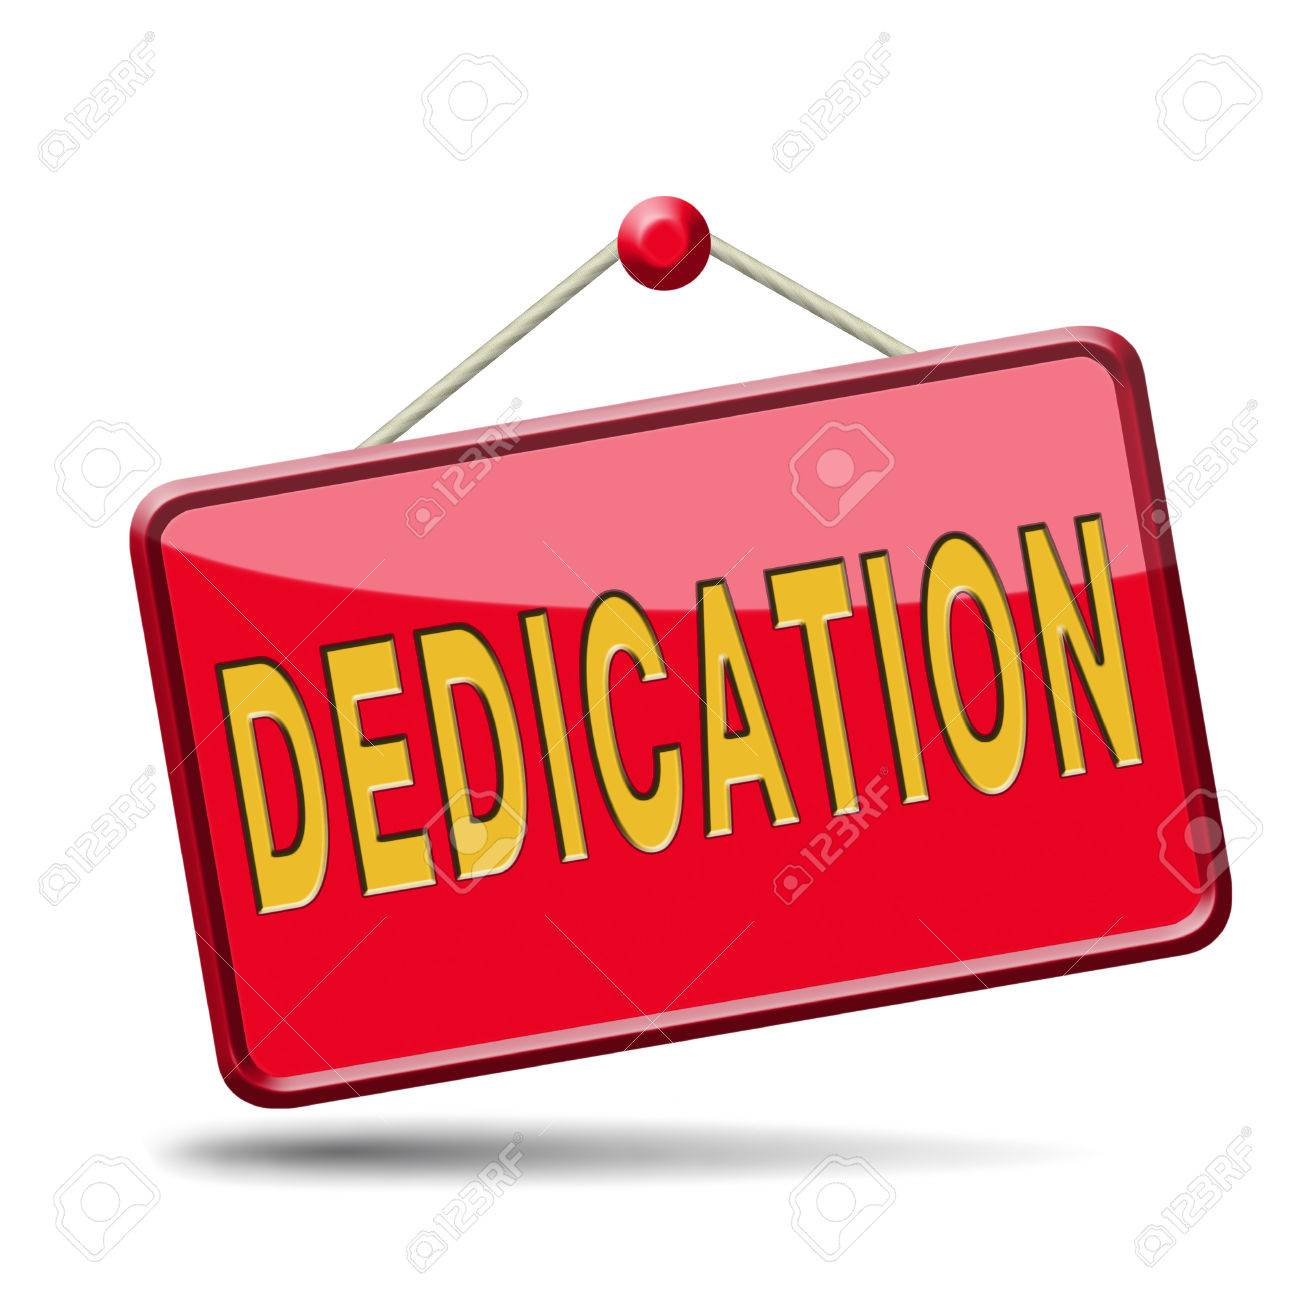 dedication motivation and attitude motivate self for a job letter stock photo dedication motivation and attitude motivate self for a job letter a talk or task yes we can think positive